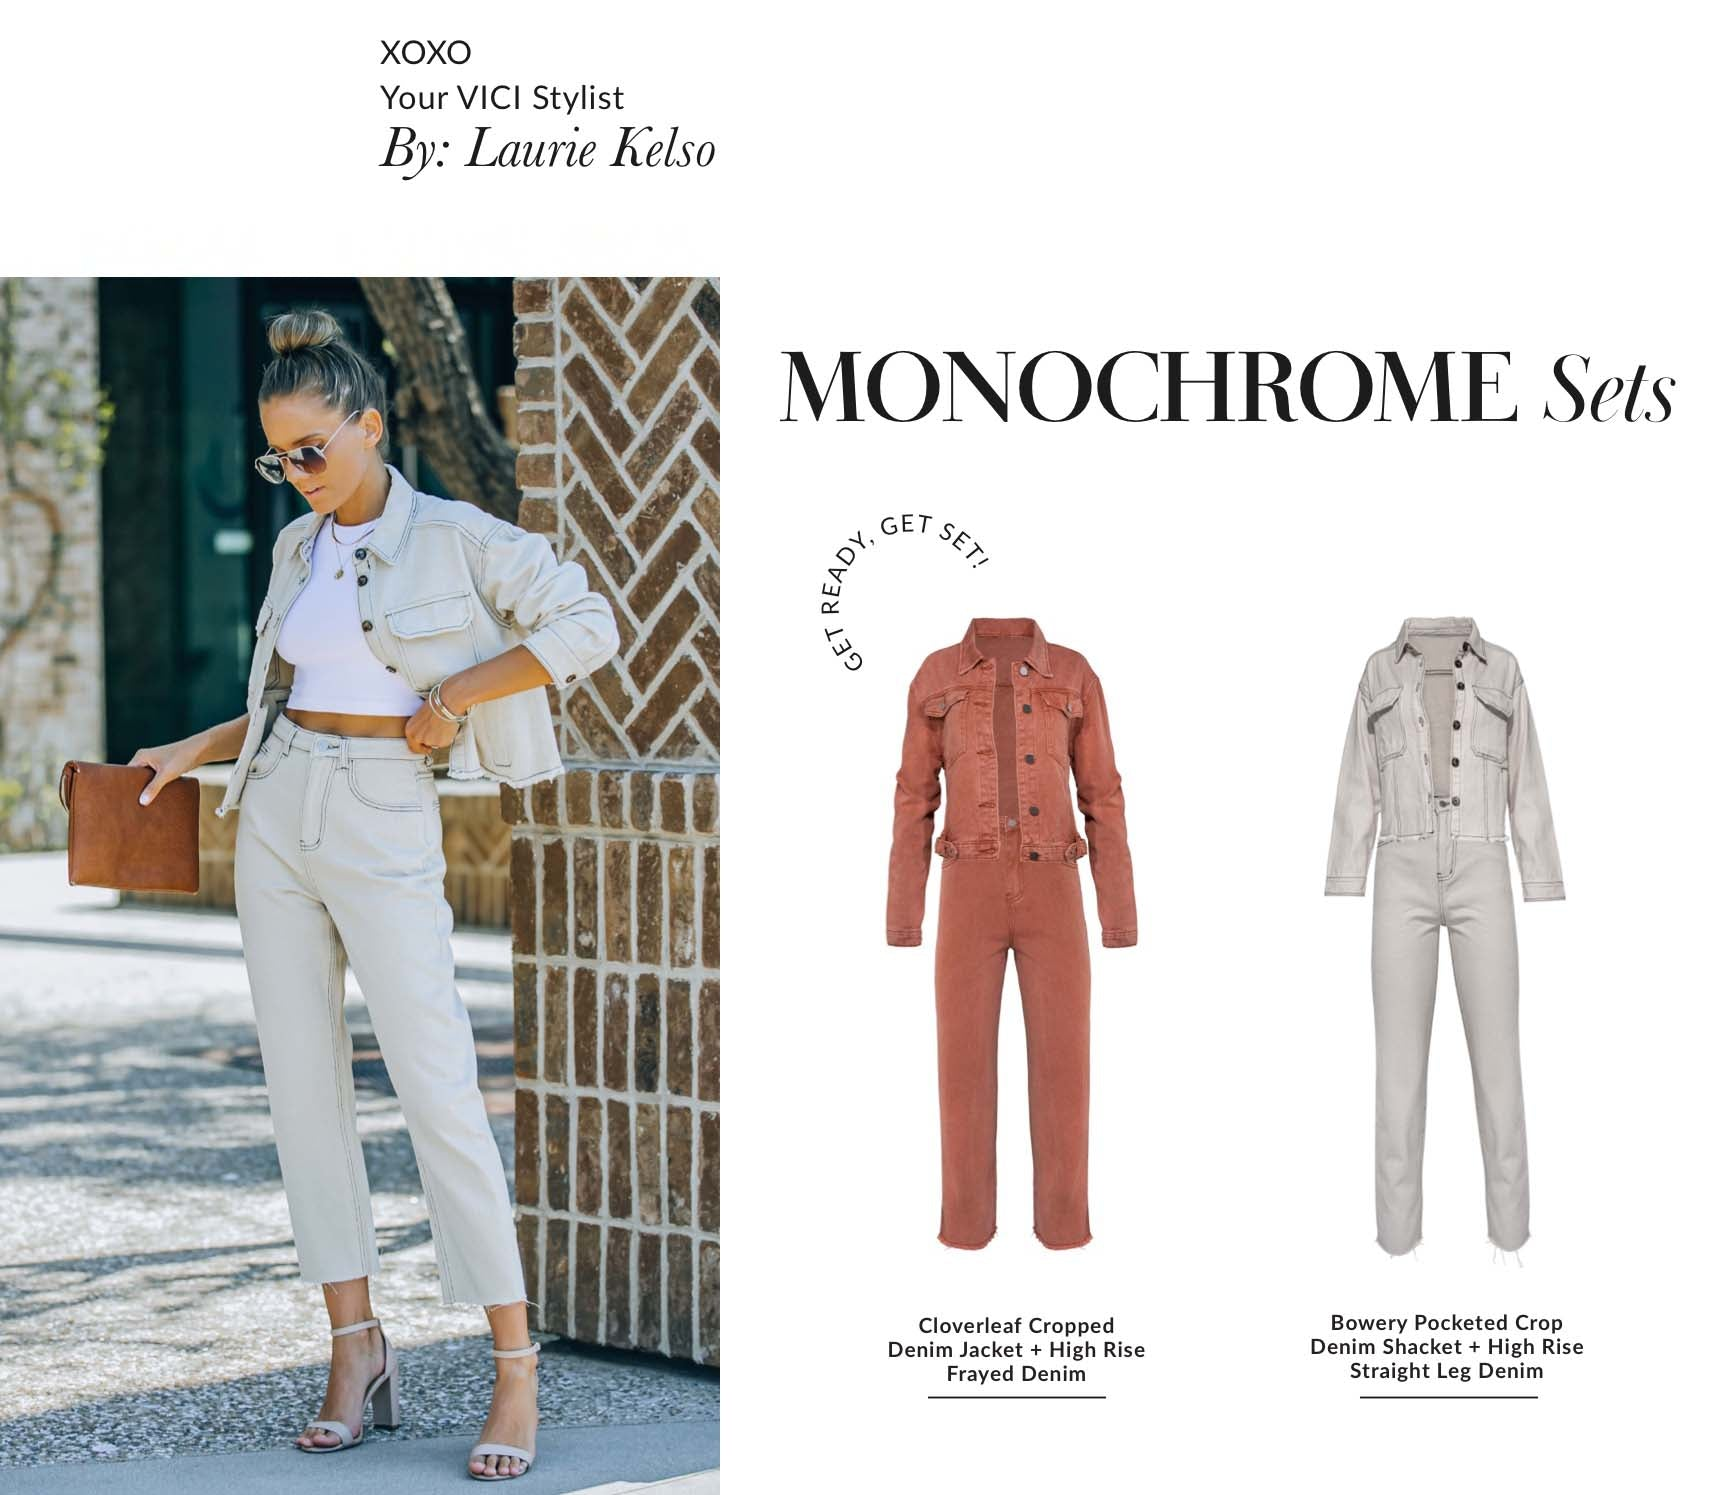 Step aside skimpy summer set, the Monochrome Denim set is taking center stage this season. This dynamic denim duo looks its best in neutral fall tones! You'll feel like a major boss when wearing this two piece set with heels and a tan clutch. The rigid and boxy feel gives this set cool-girl energy. Talk about a power suit